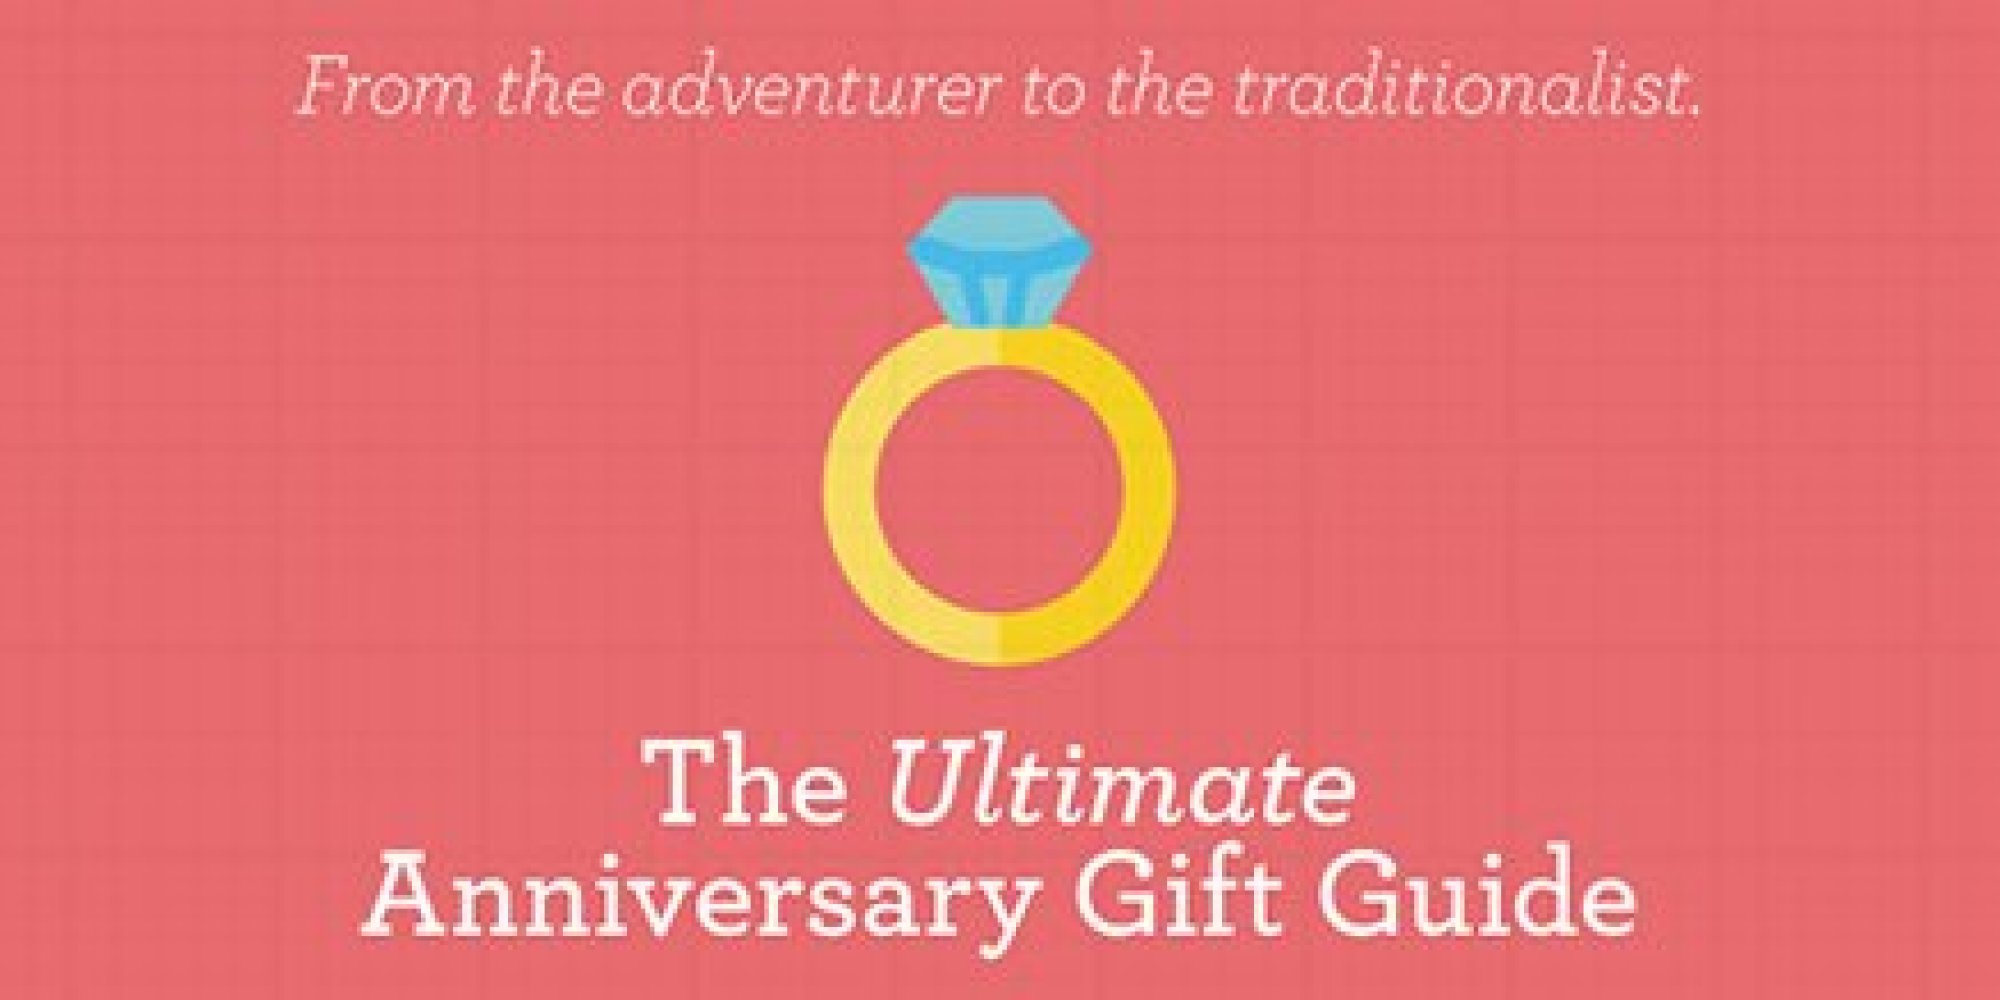 9th Year Wedding Anniversary Gifts: The Ultimate Anniversary Gift Guide For Every Kind Of